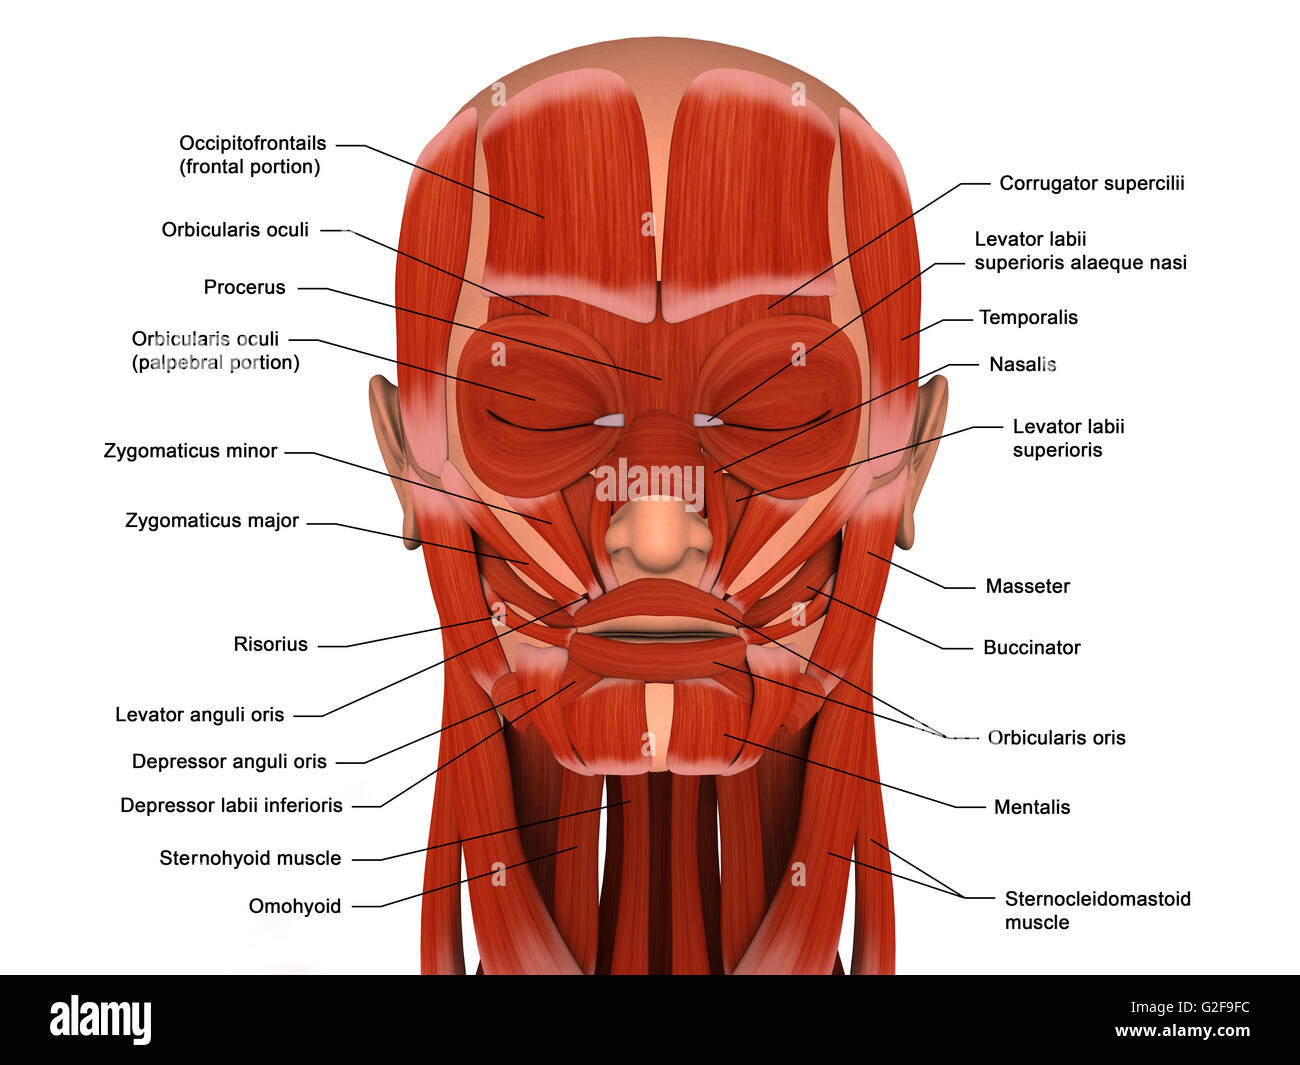 Facial Muscles Stock Photos & Facial Muscles Stock Images - Alamy